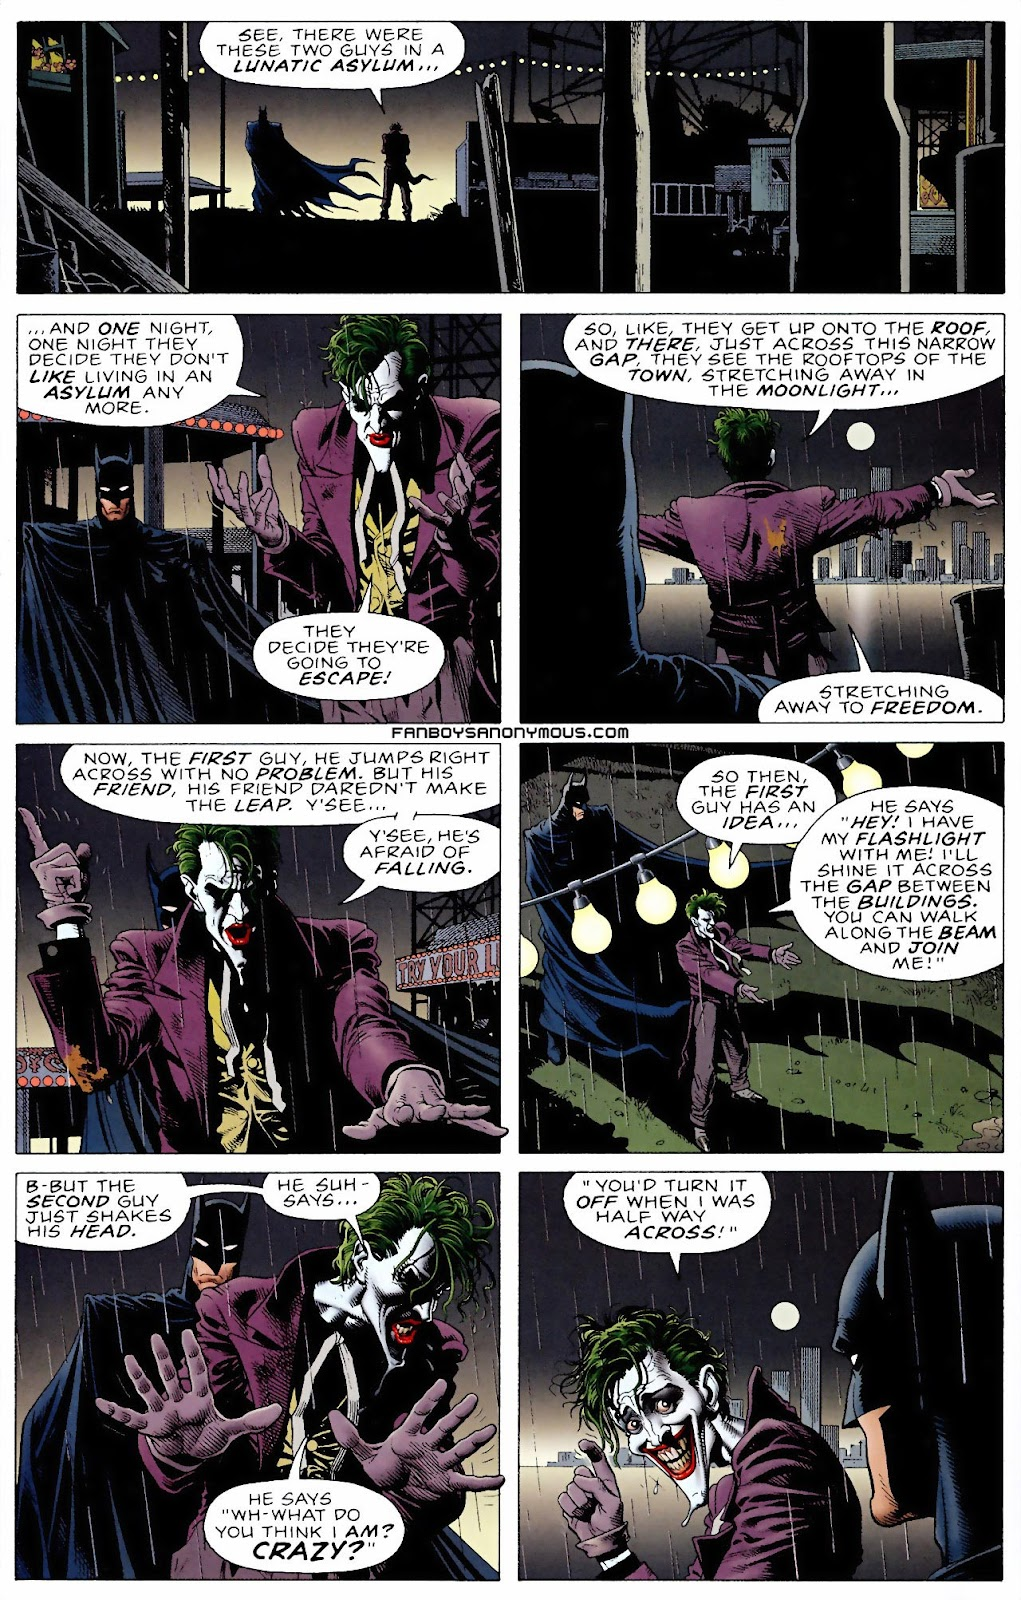 What is the joke at the end of The Killing Joke?